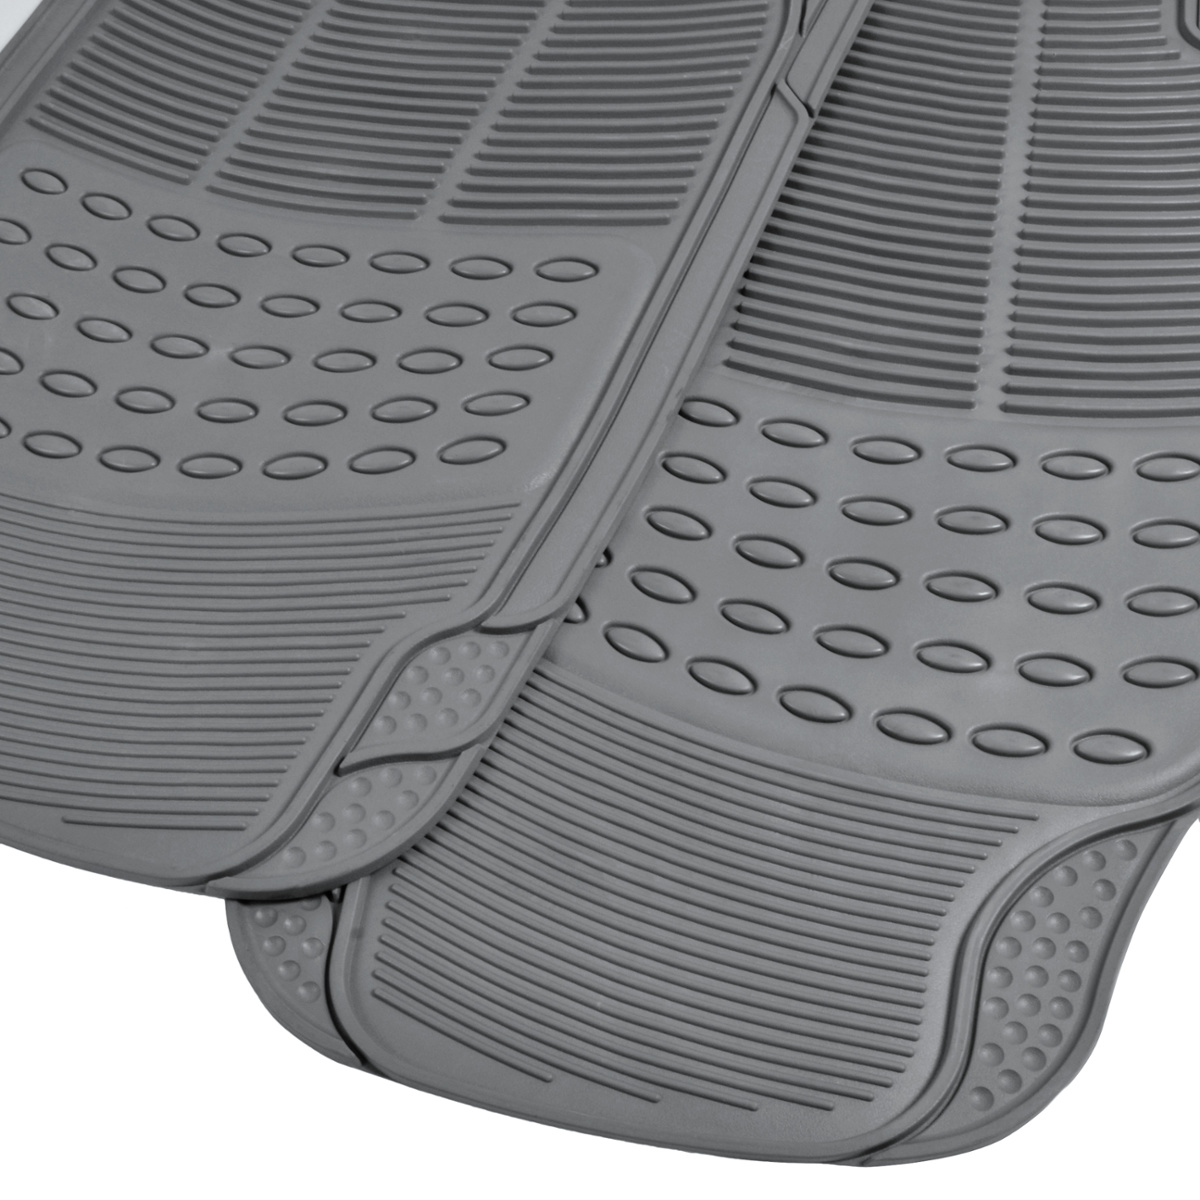 Rubber floor mats toyota rav4 - Rubber Liner For Toyota Rav4 Floor Mats Gray 3 Pc Semi Custom Fit All Weather